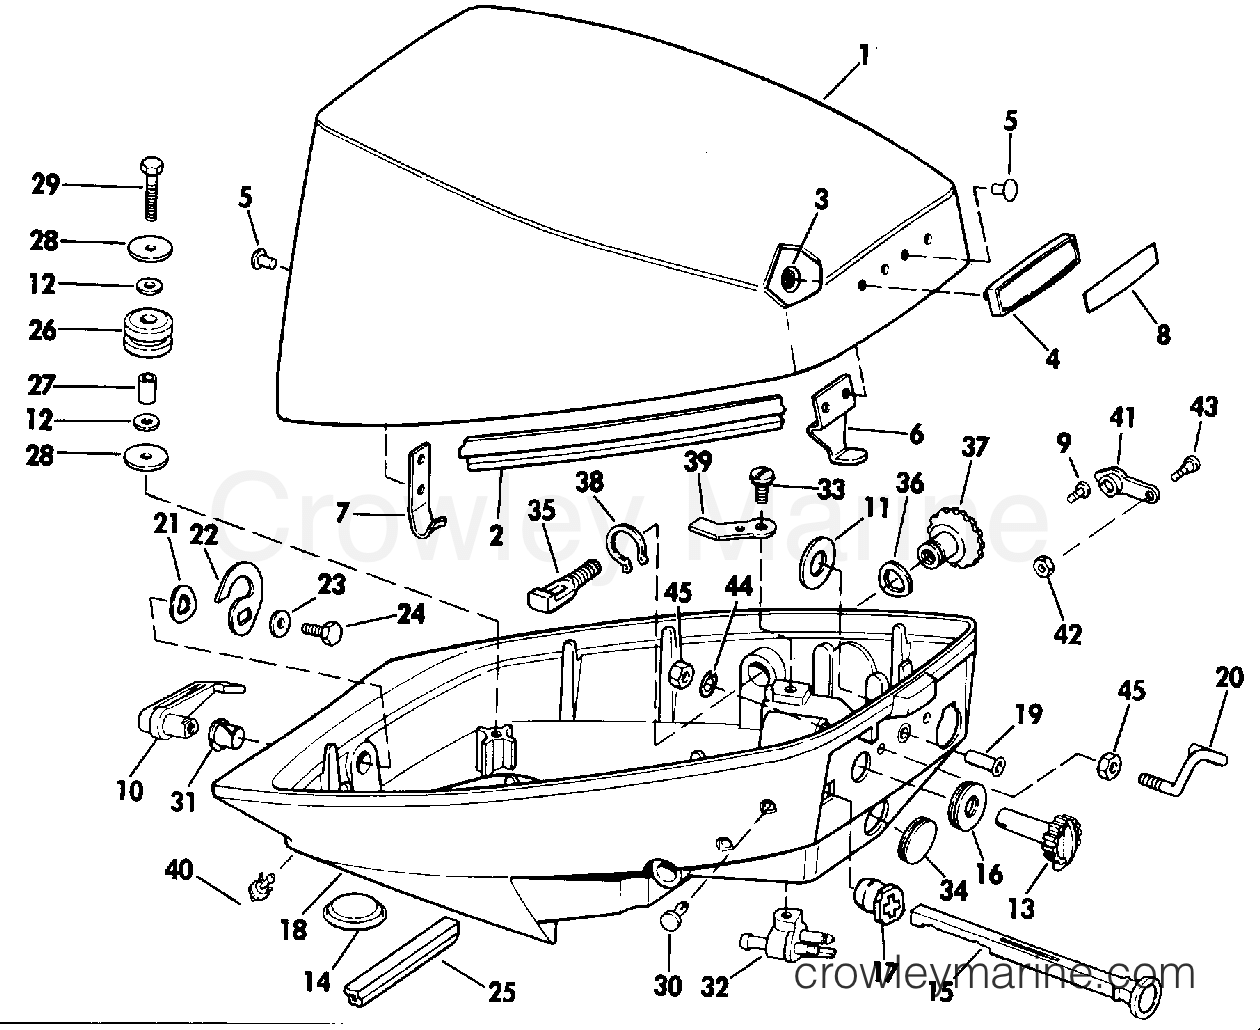 j15rcrm johnson outboard engine cover evinrude diagram and parts